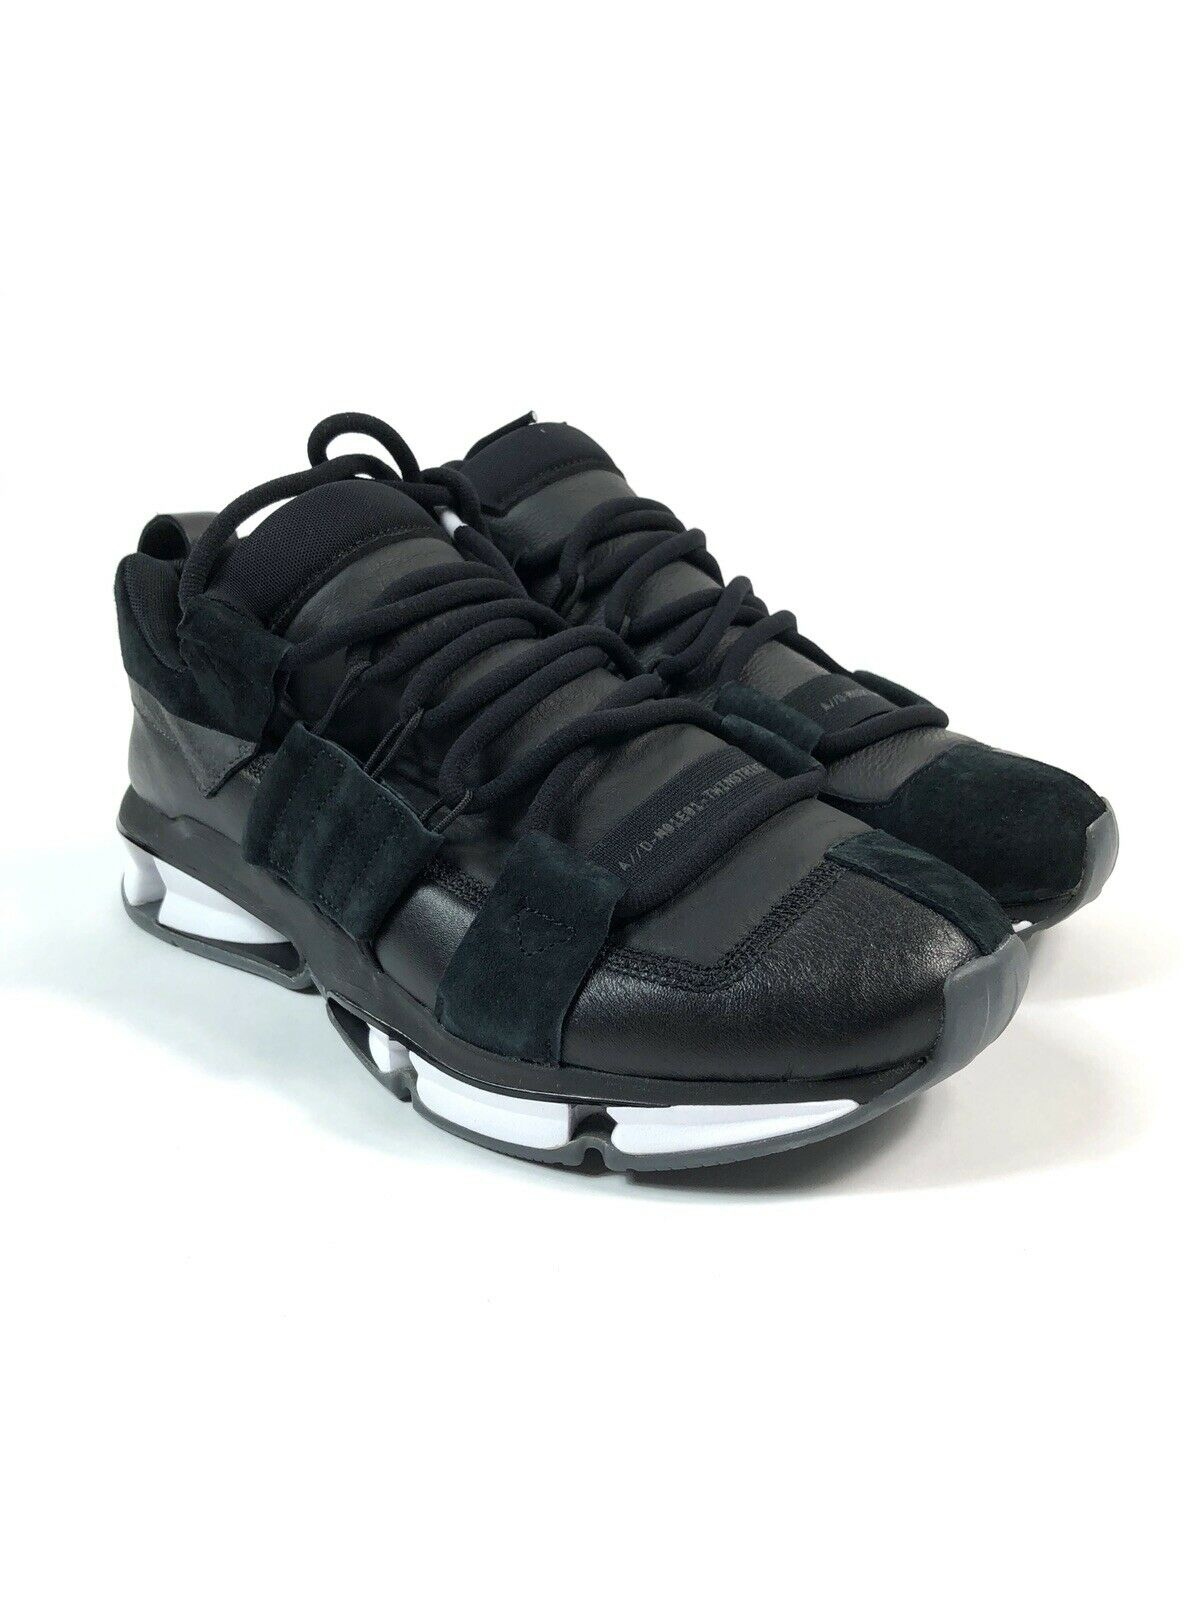 ADIDAS TWINSTRIKE ADV STRETCH LEATHER MENS SHOES SHOES SHOES B28015 SIZE 10 NEW 9d356e